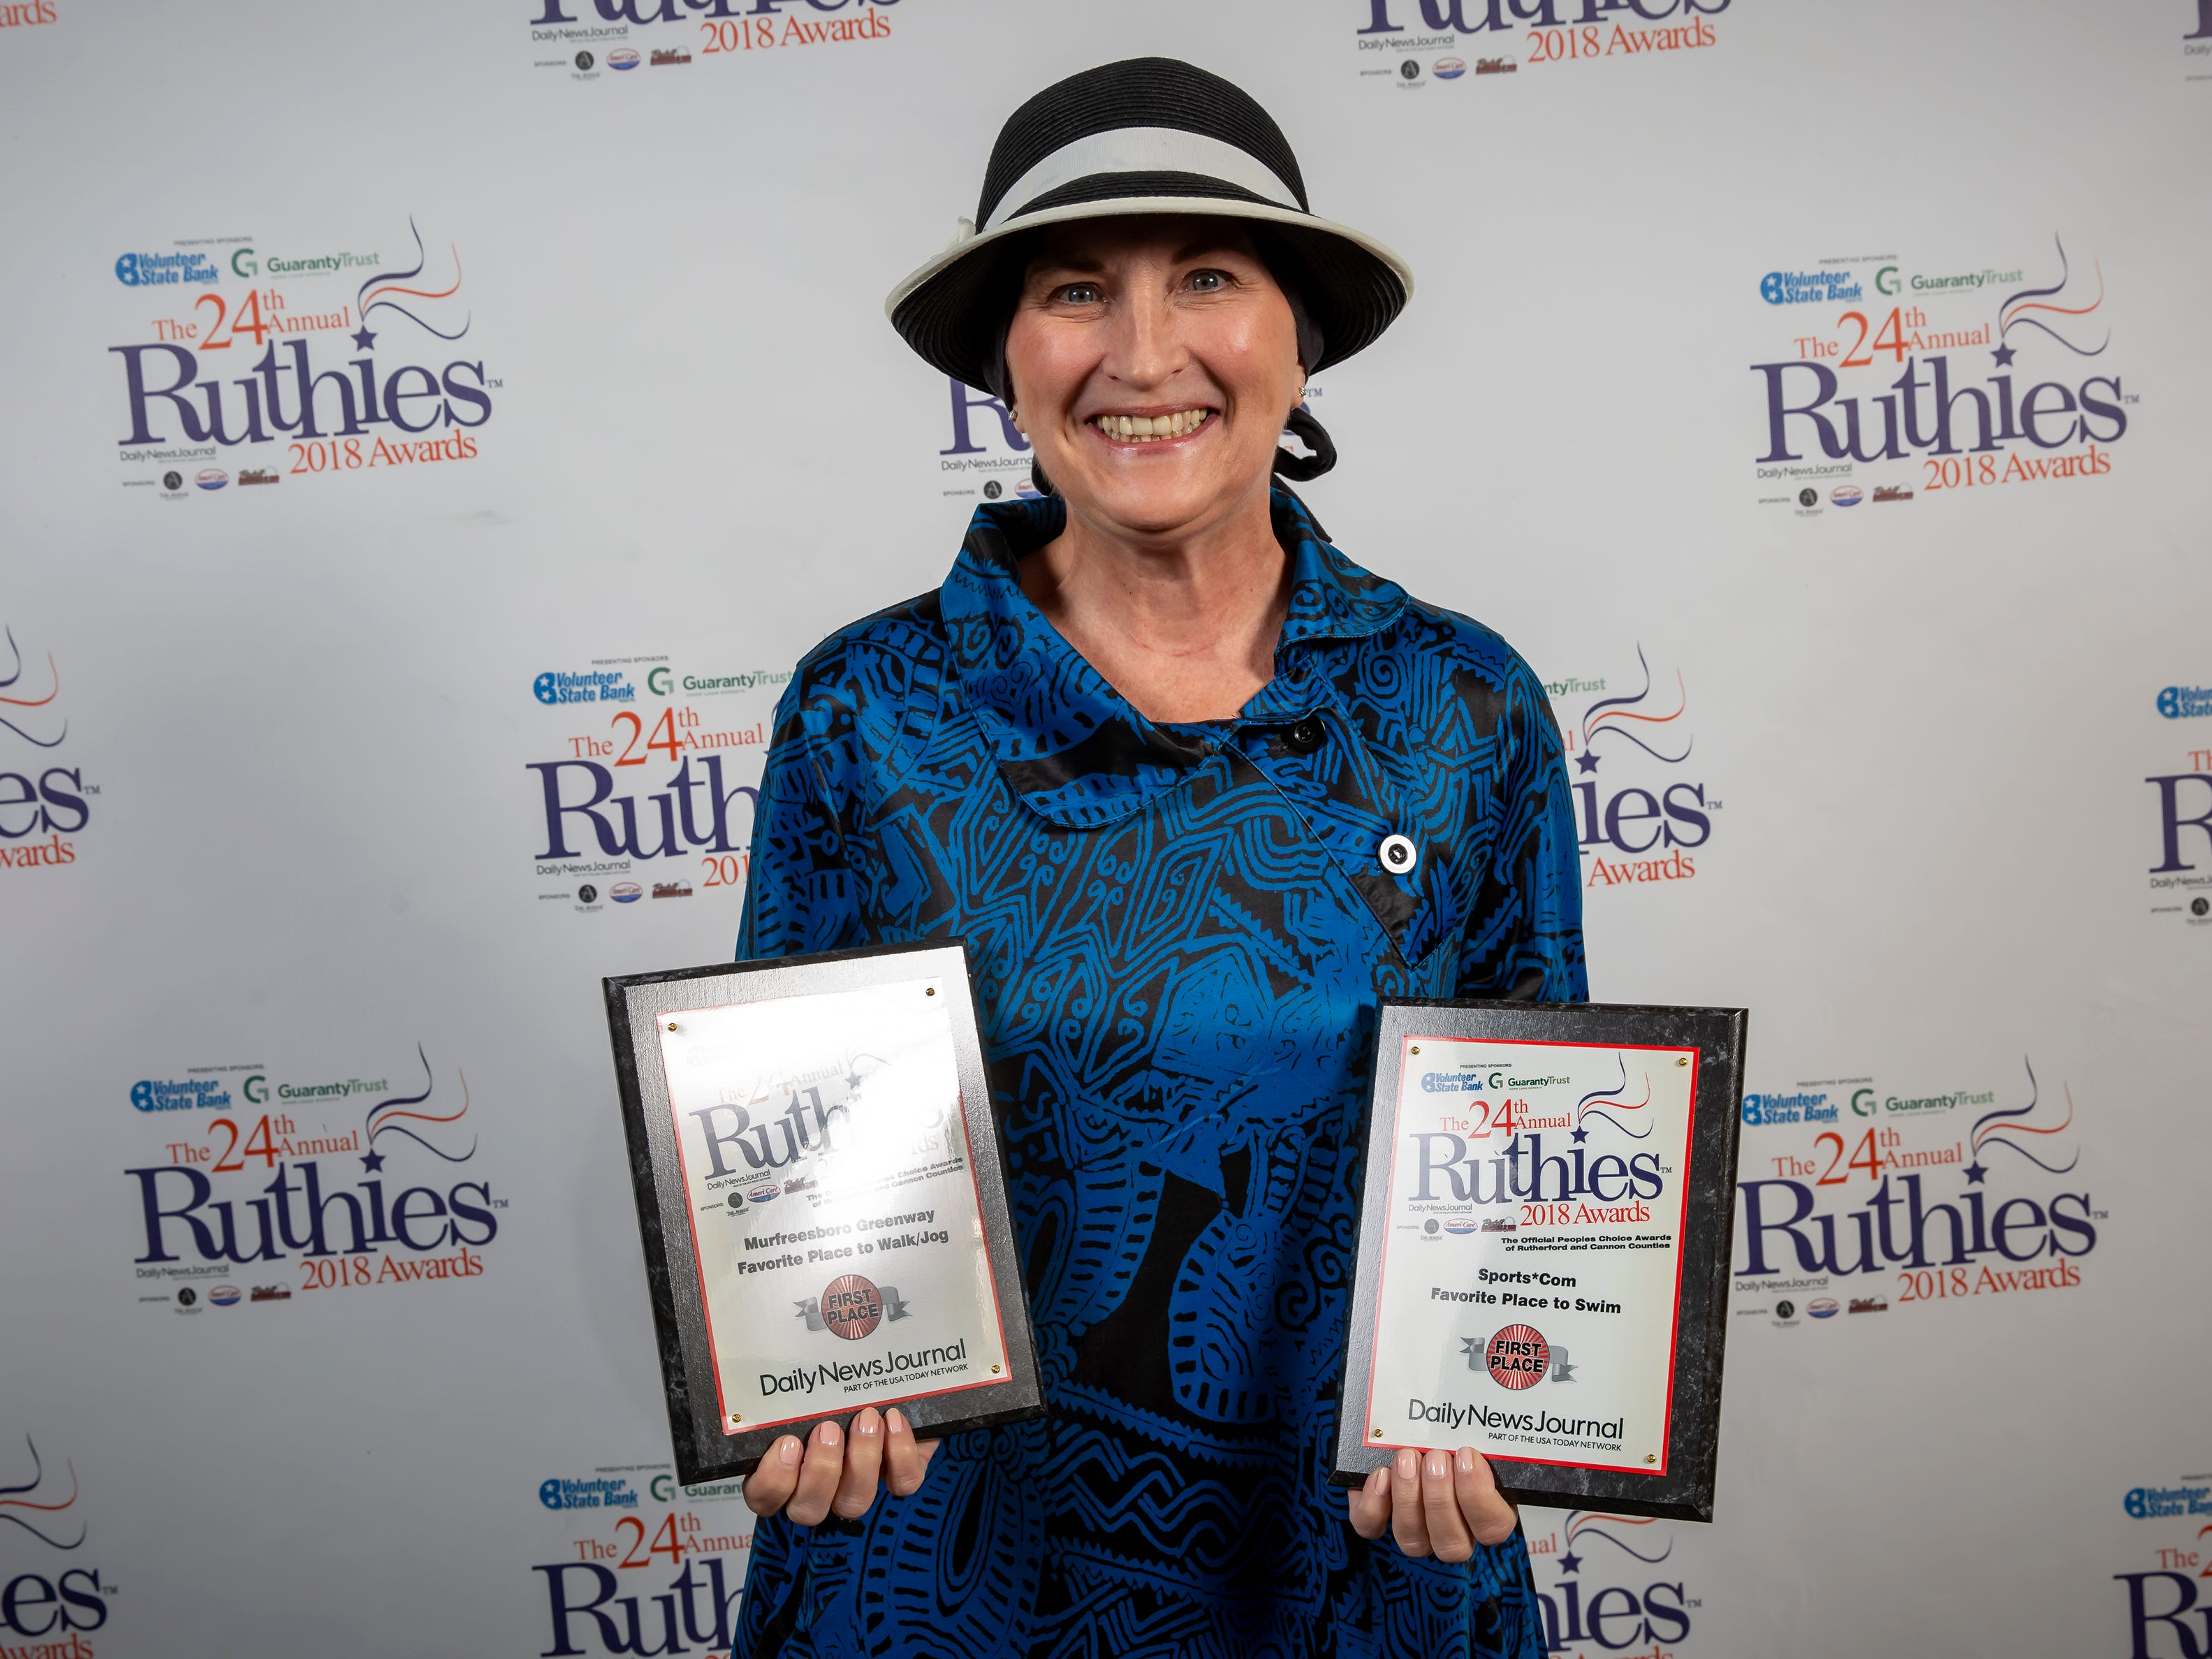 The 24th annual Ruthies Awards were held Tuesday, Oct. 23, 2018 at DoubleTree Hotel in Murfreesboro.